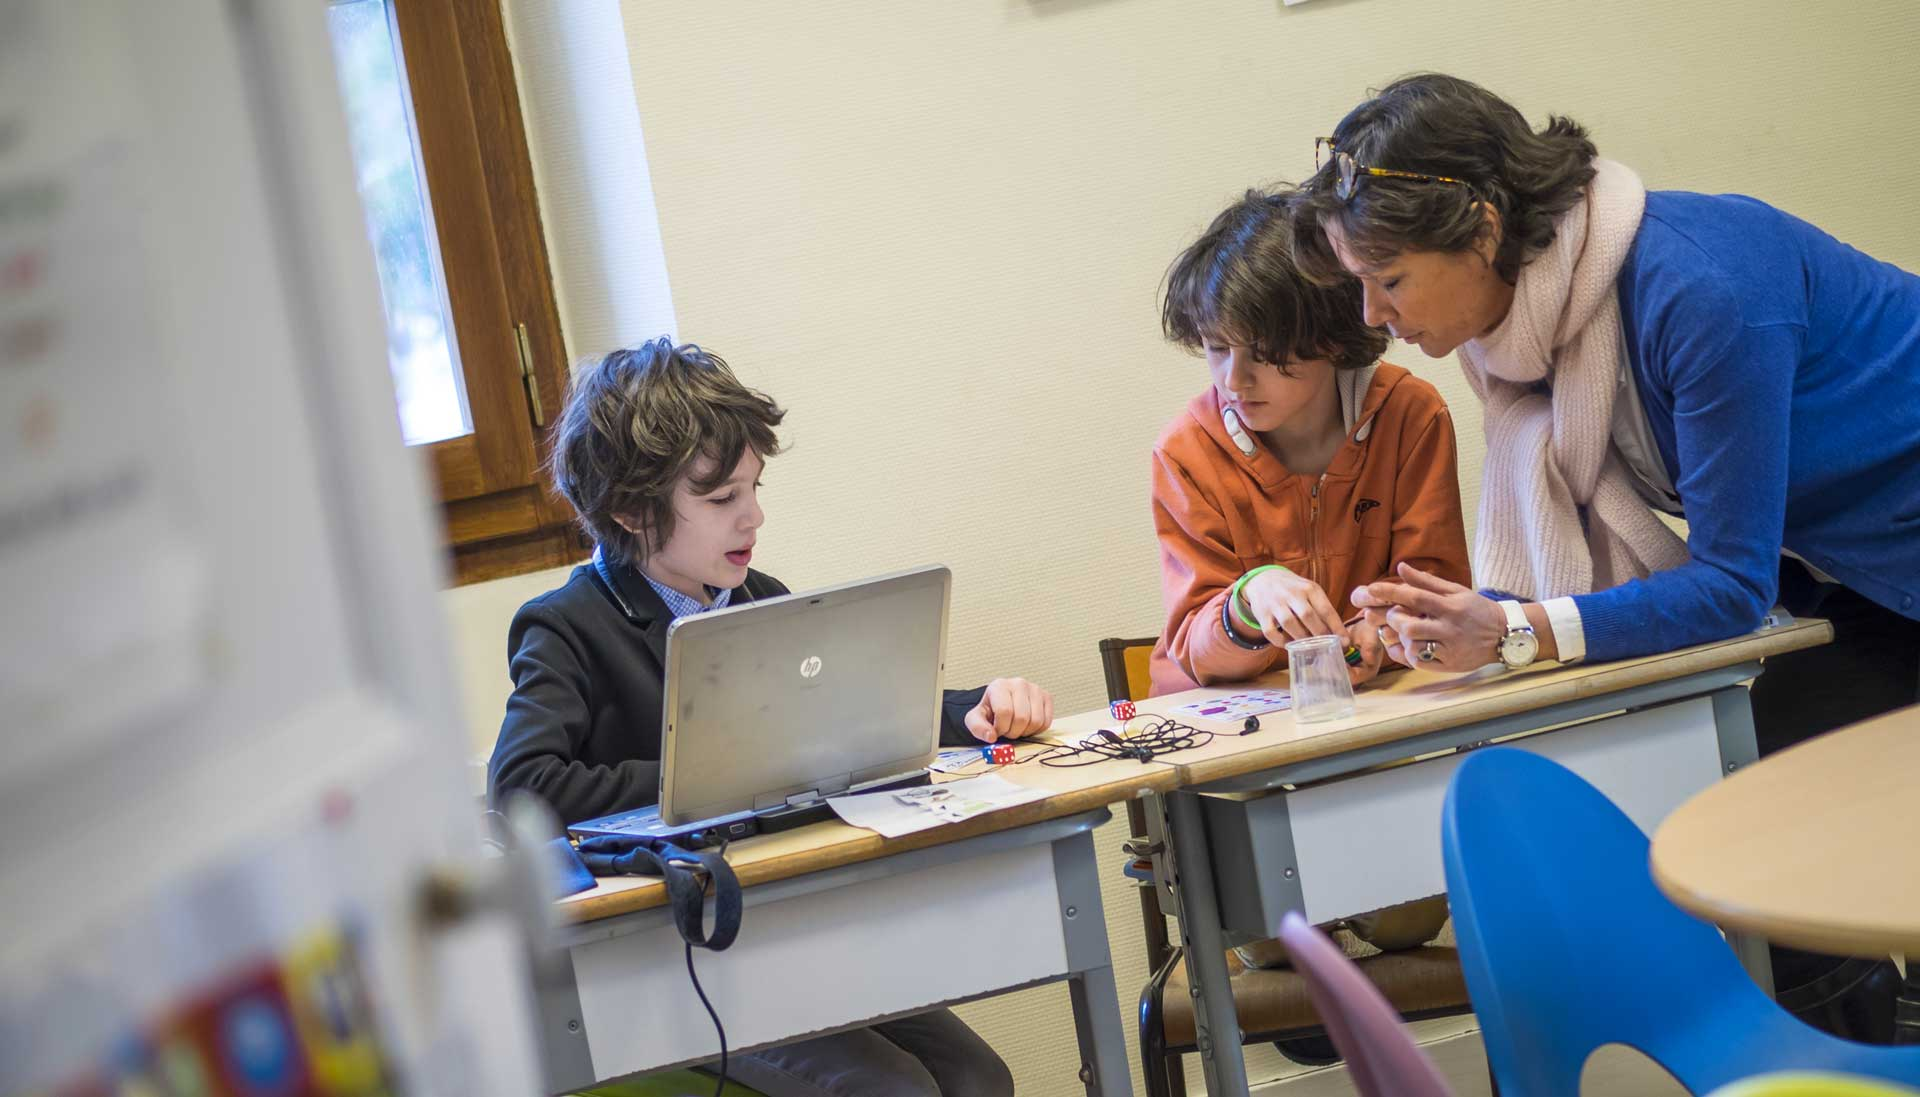 Reportage photographes Education Annecy